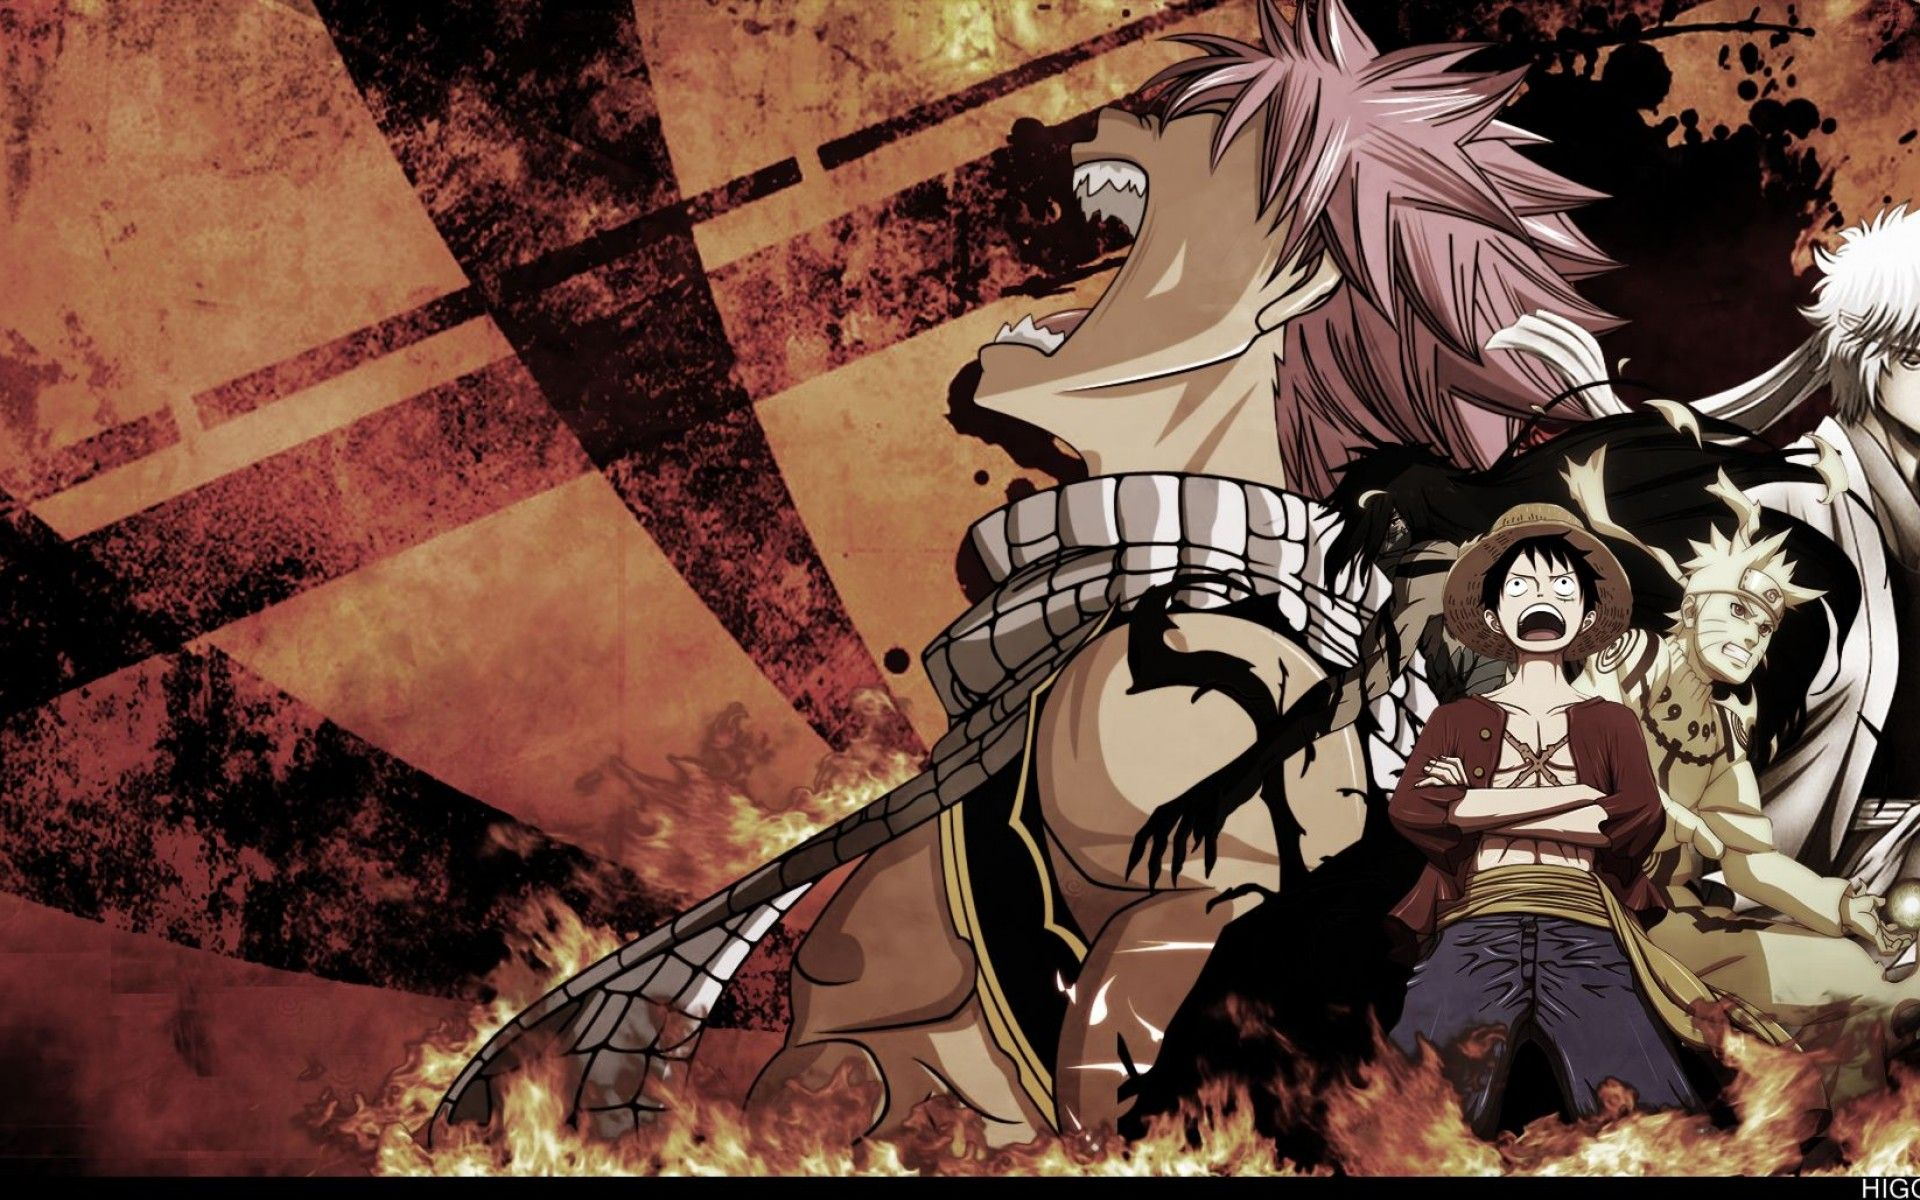 1592028 Fairy Tail wallpaper HD free wallpapers backgrounds images ...